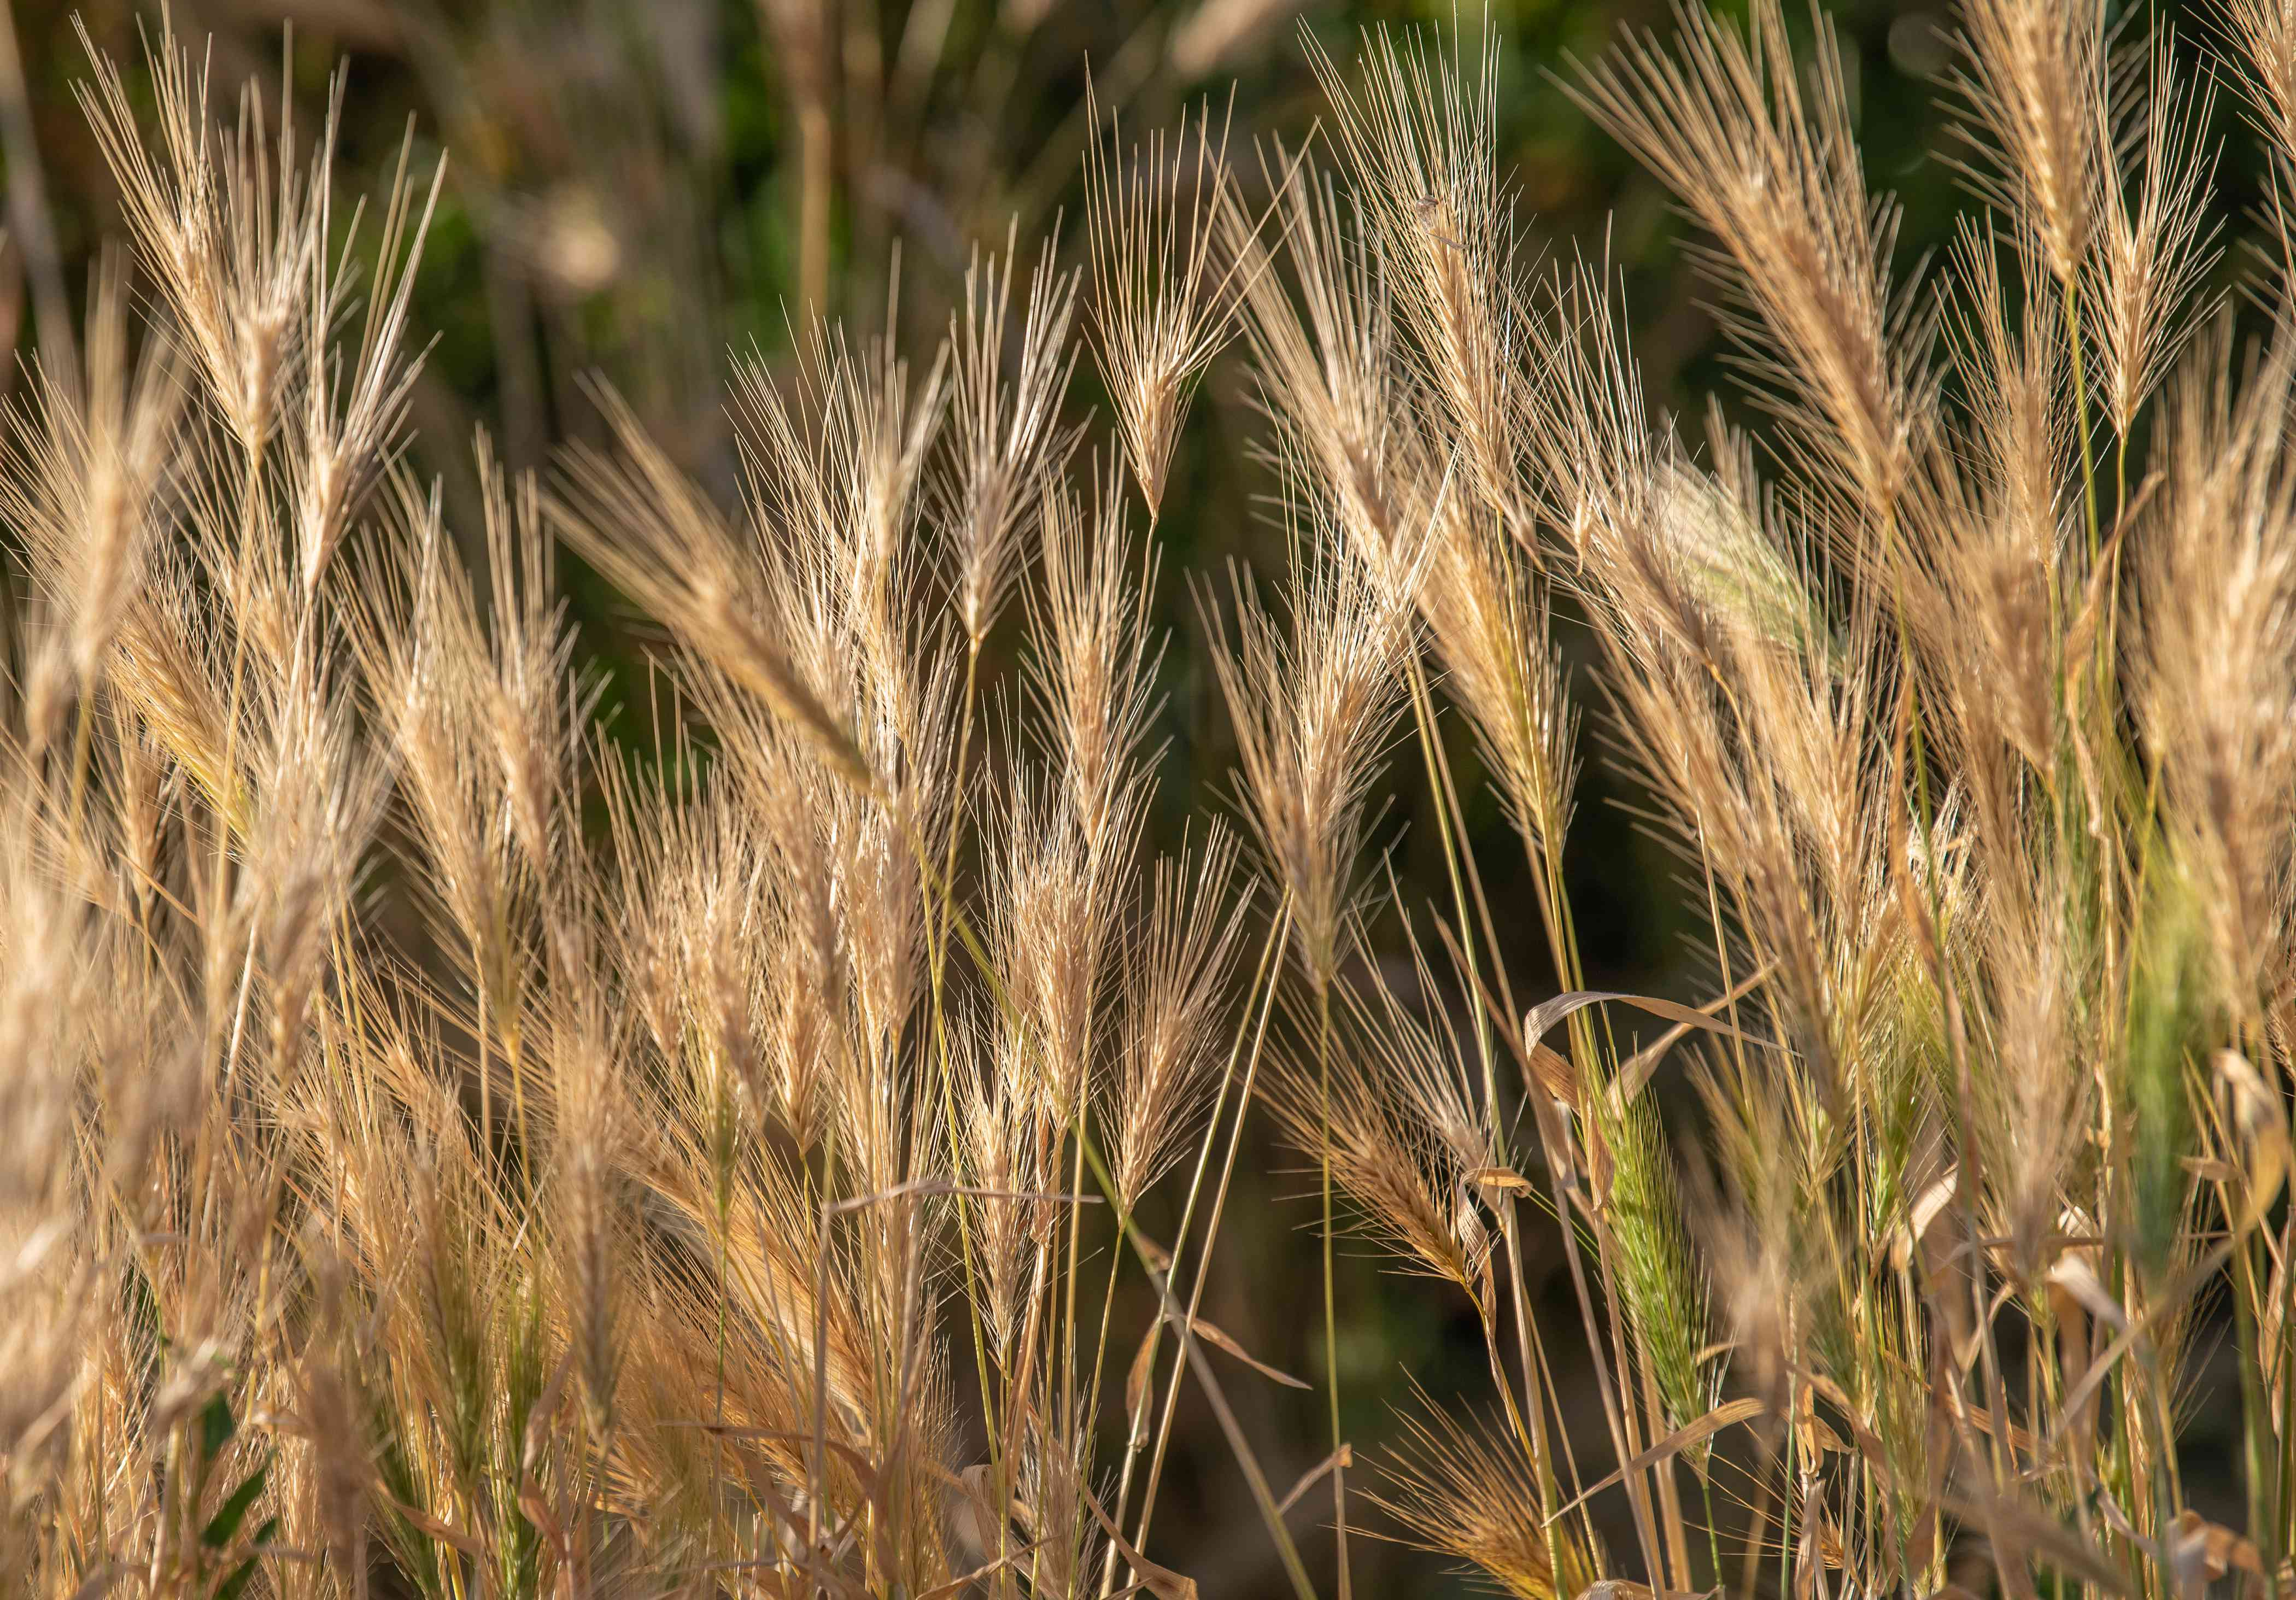 Canada wild rye with thin stems and sandy-yellow stalks on ends